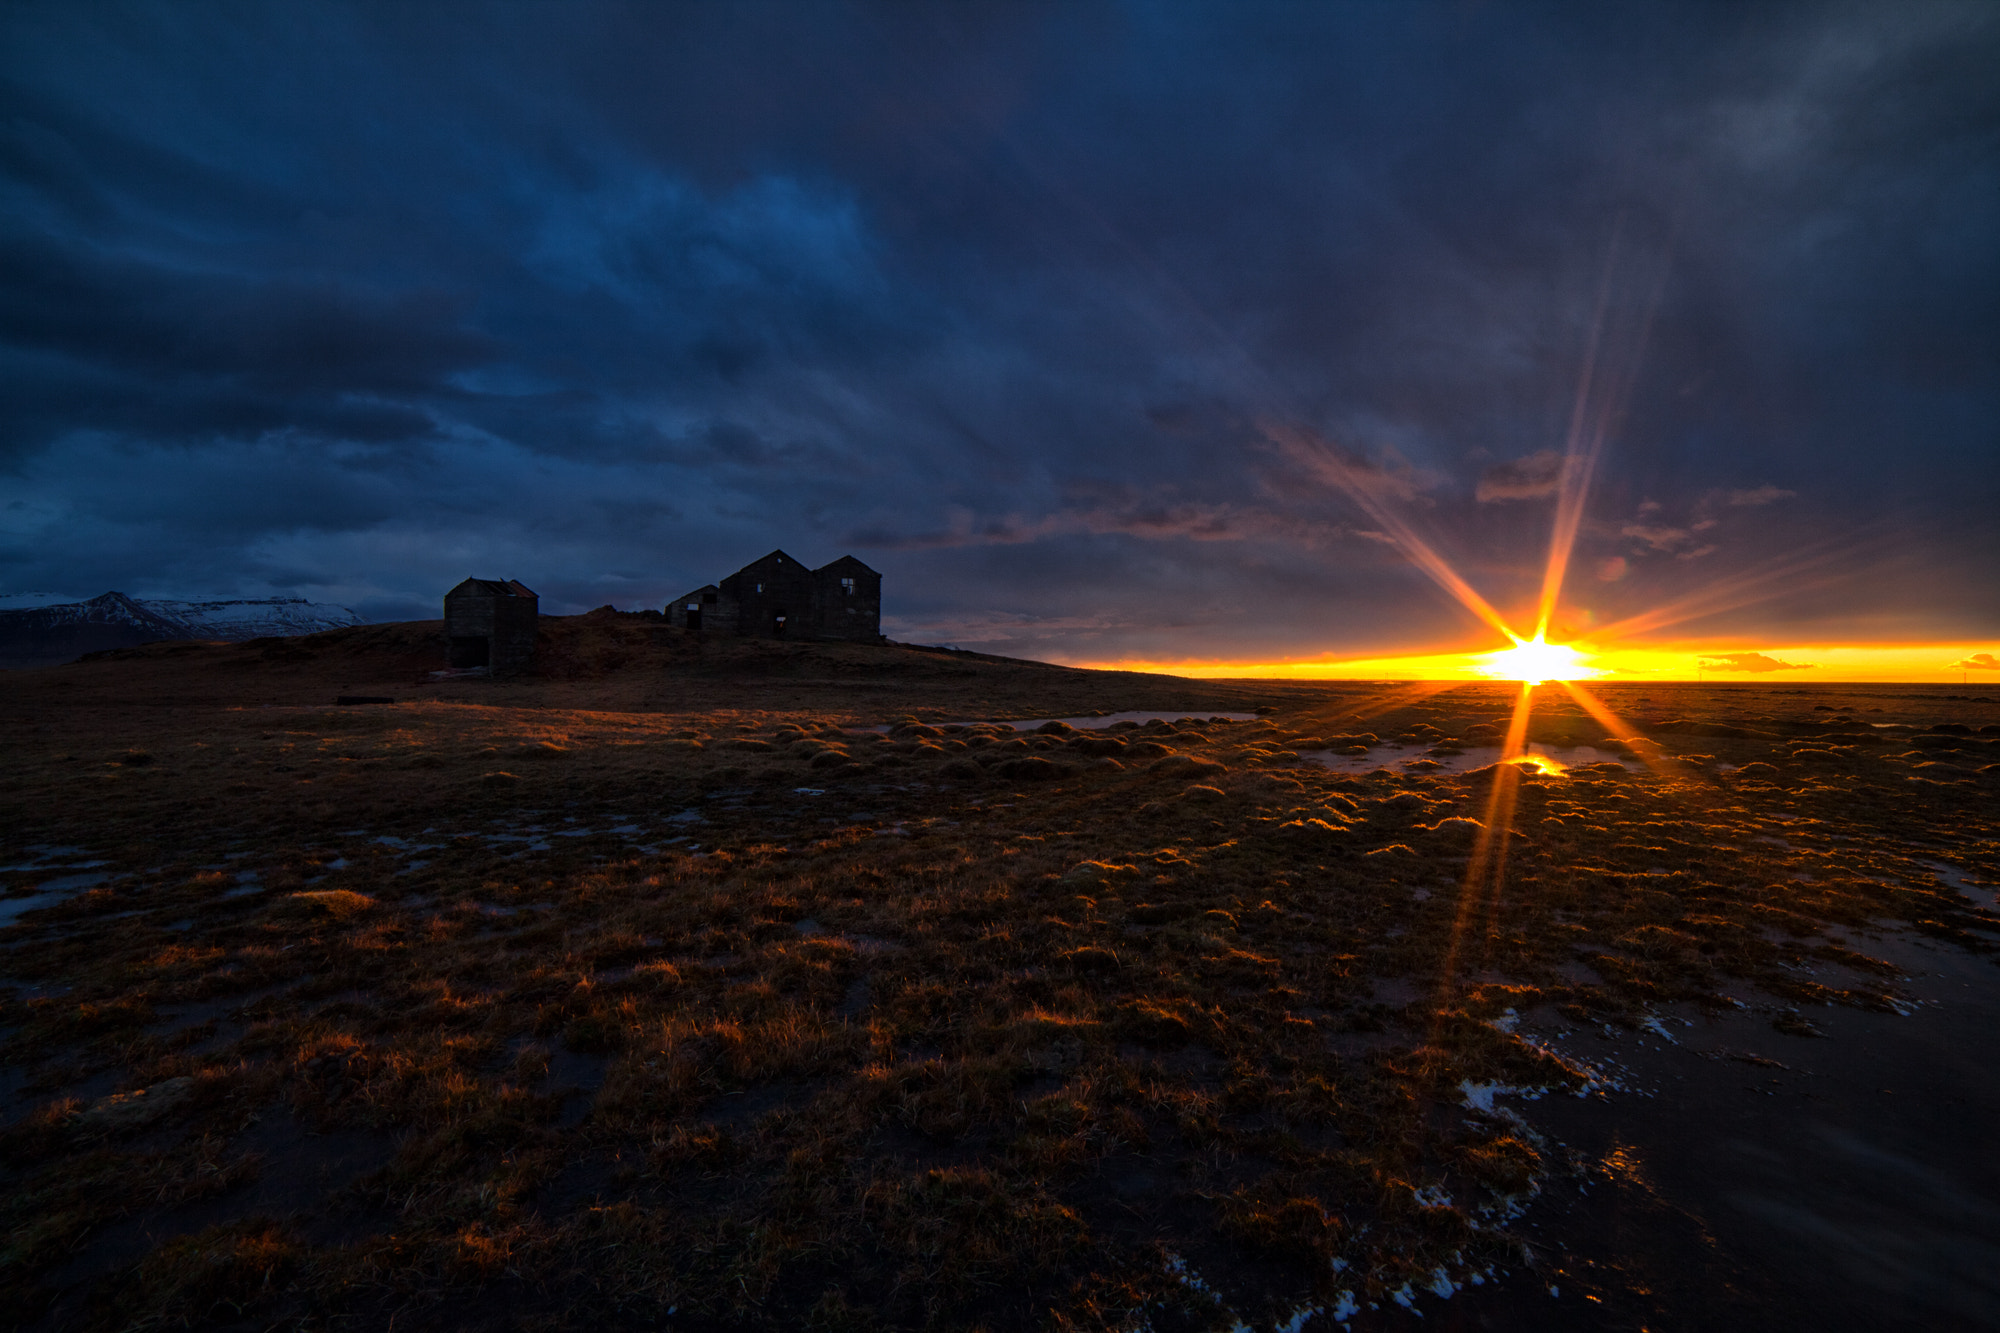 Photograph Sunrise in Iceland by Tim Vollmer on 500px